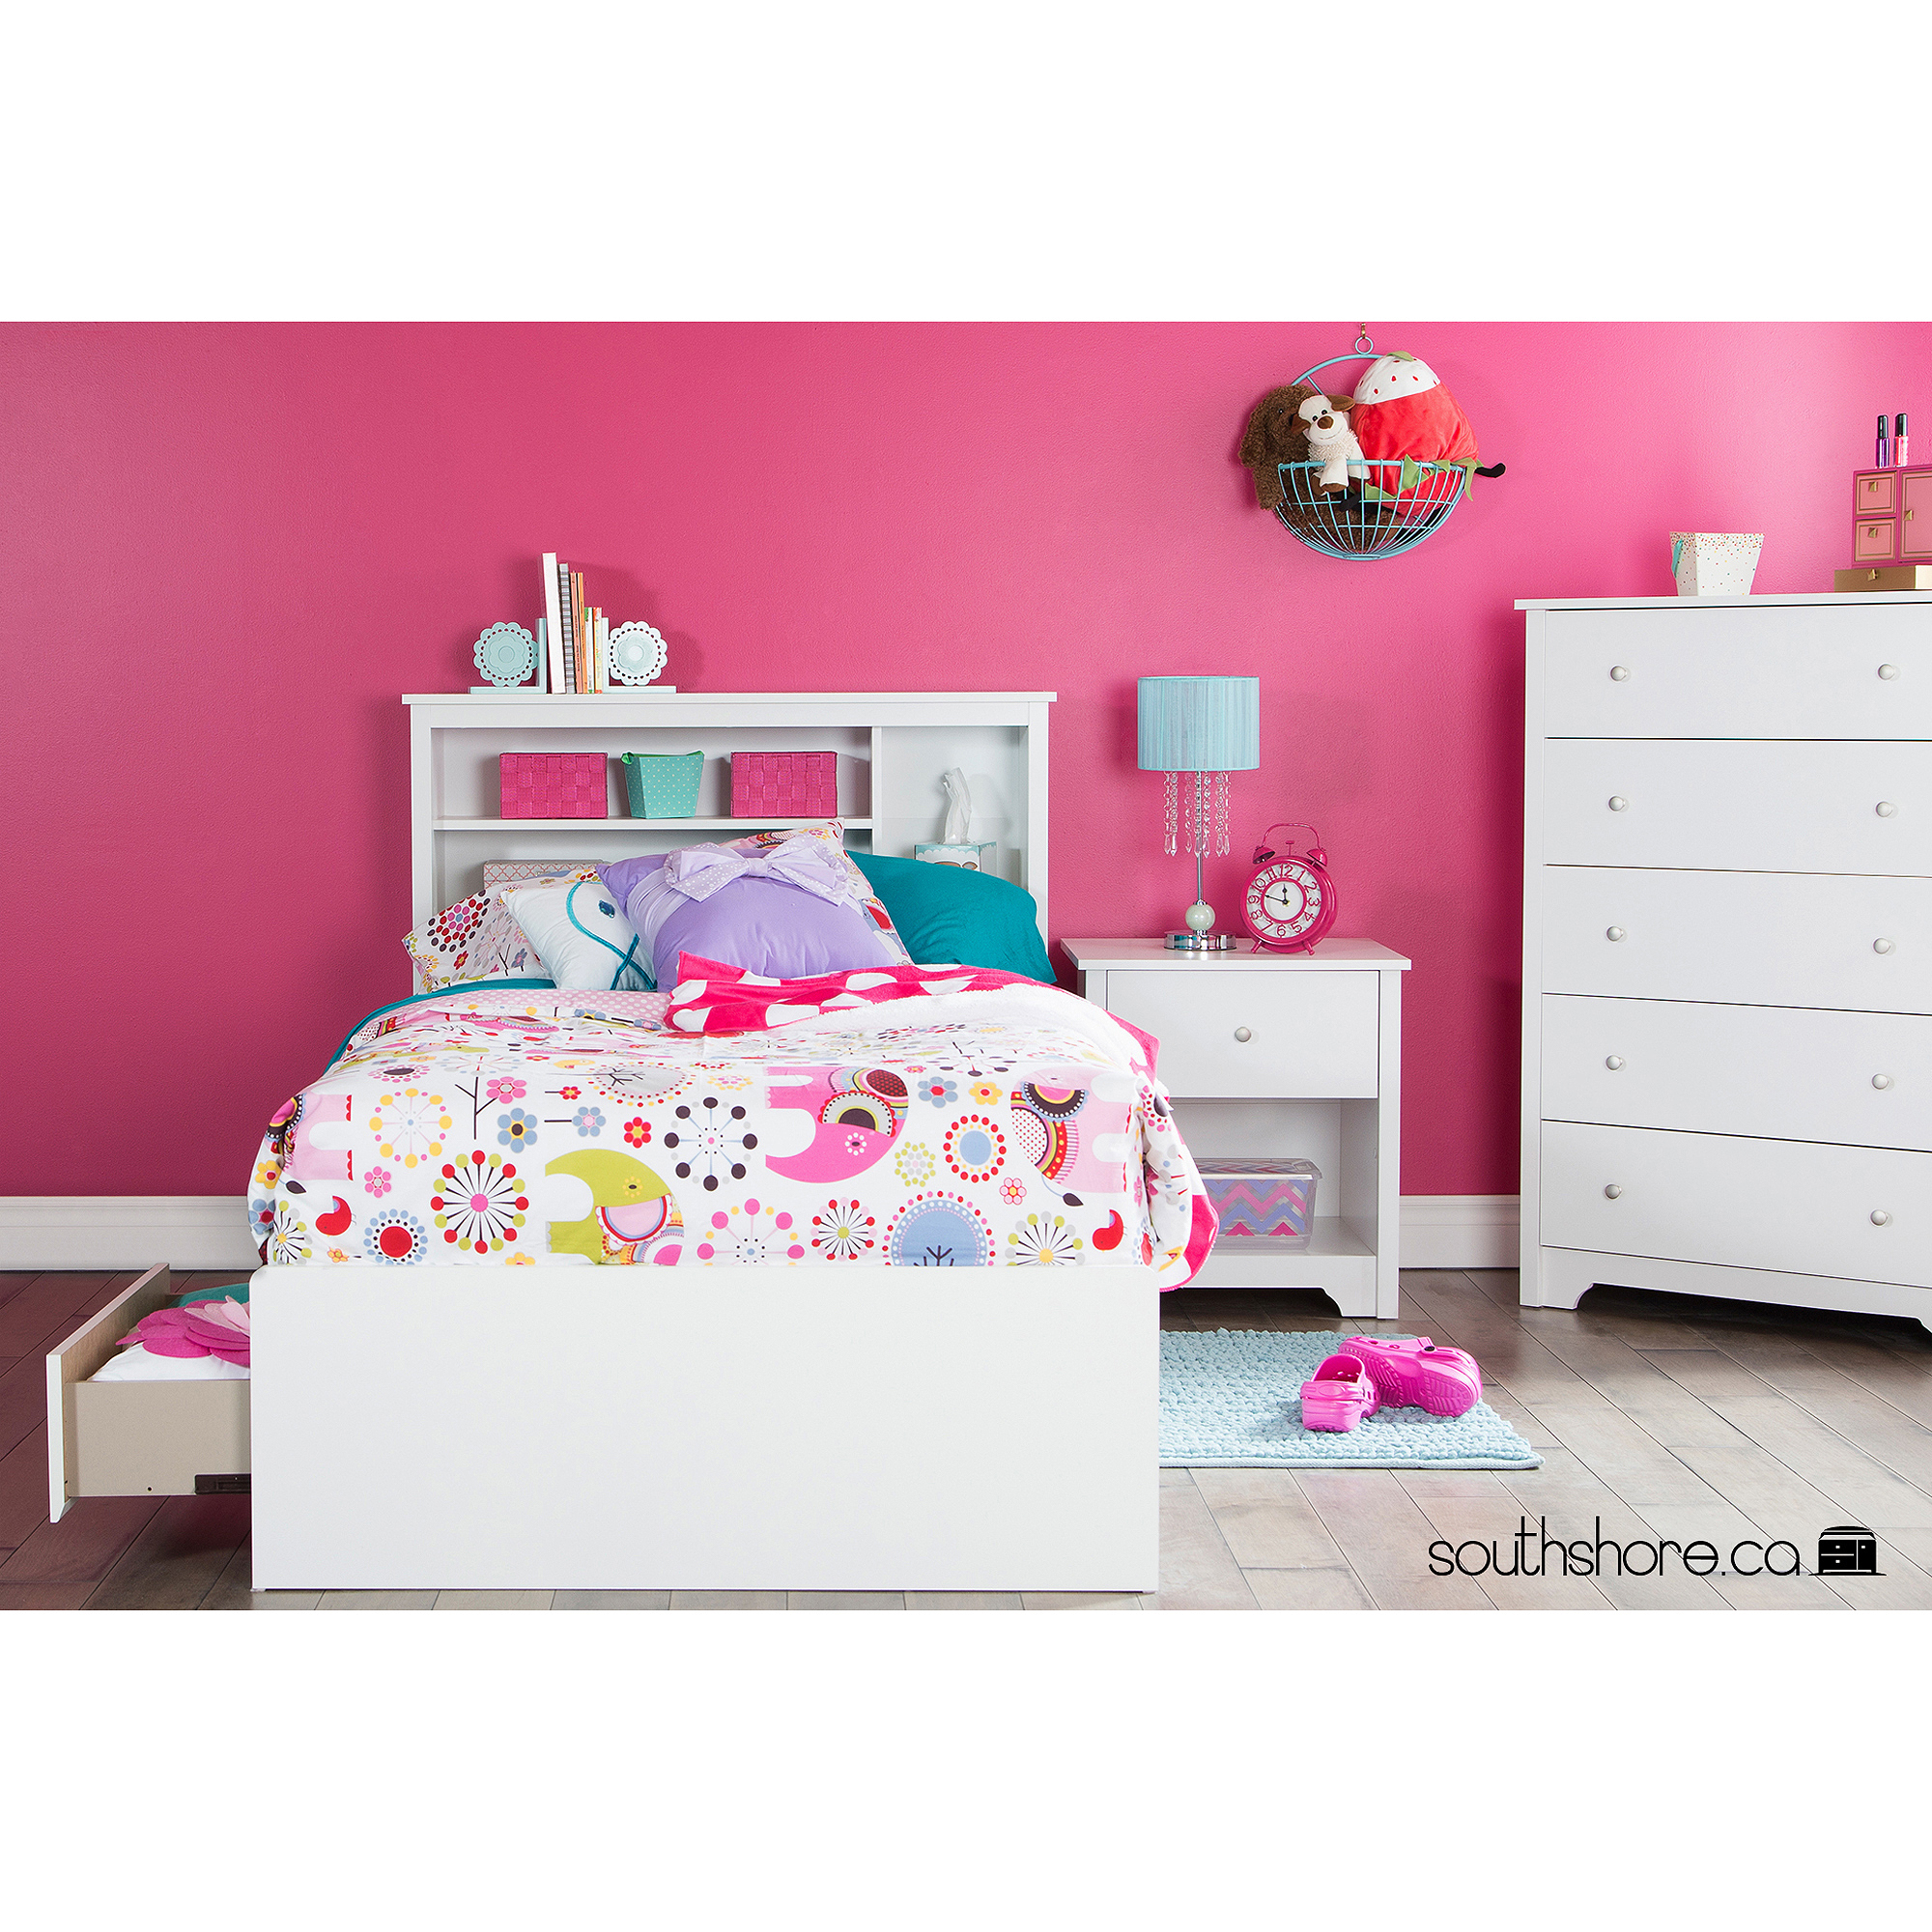 south shore vito baby and kids bedroom furniture